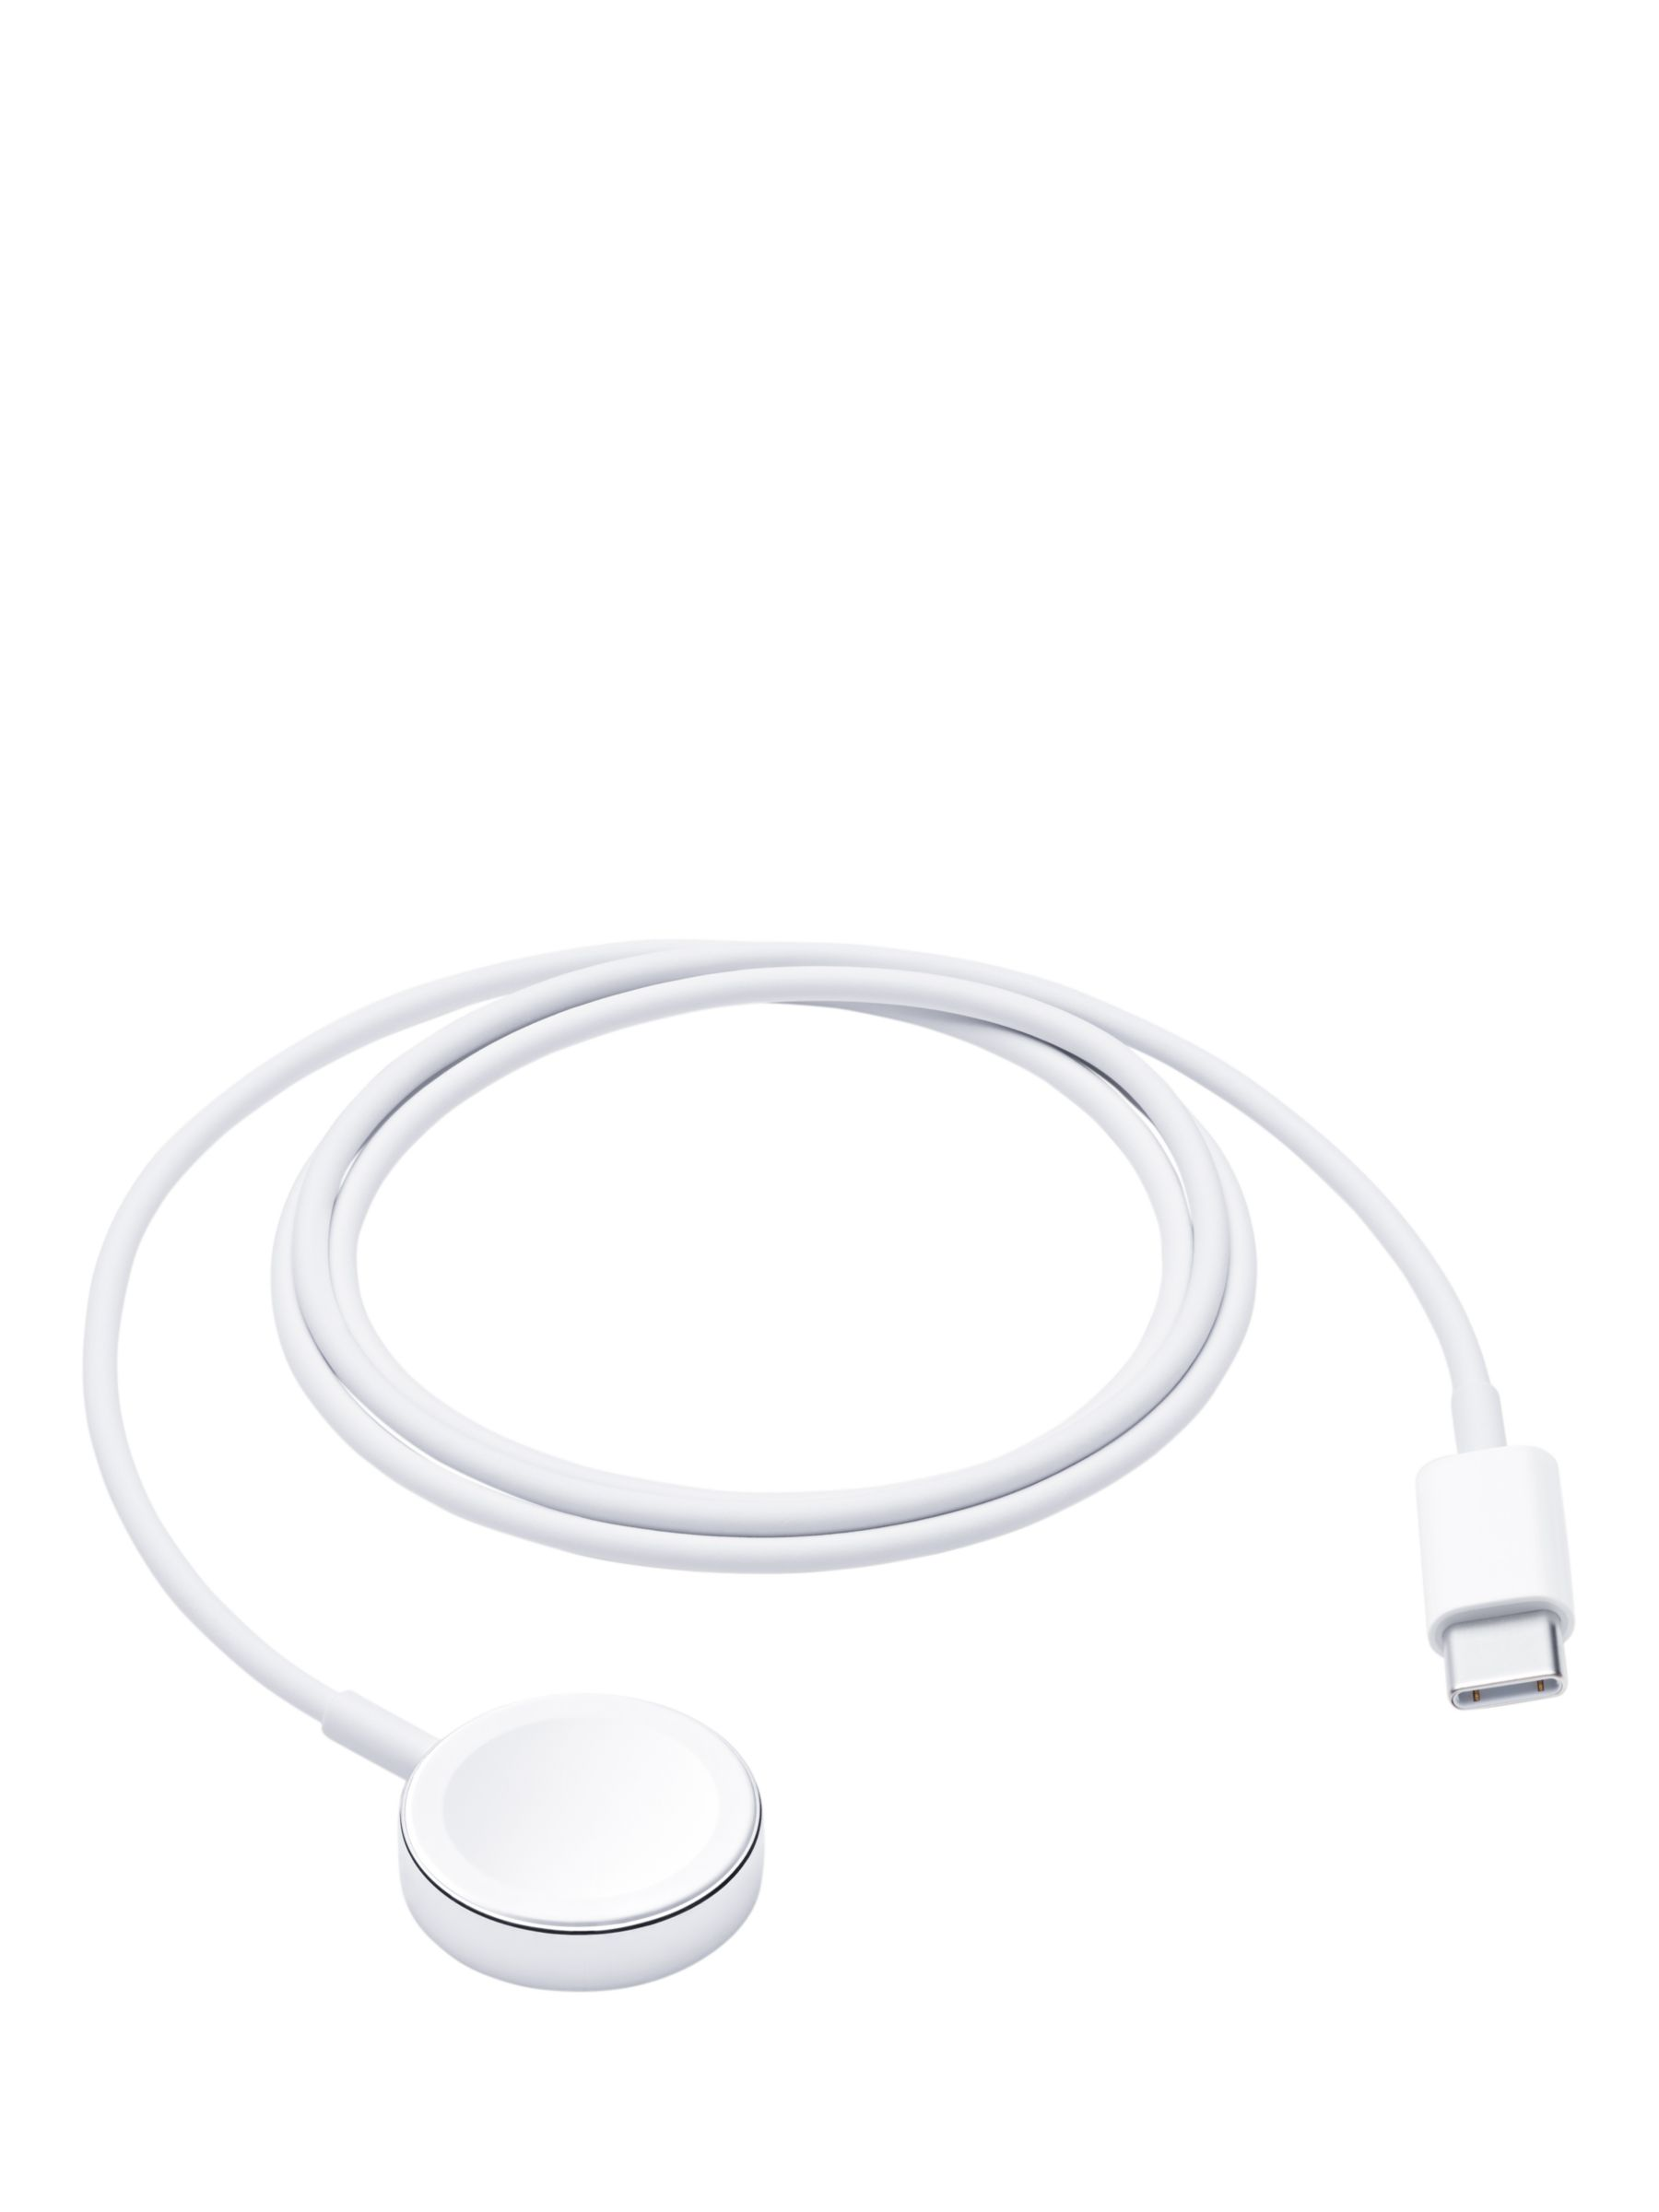 Apple USB C Charge Cable (1 m) at John